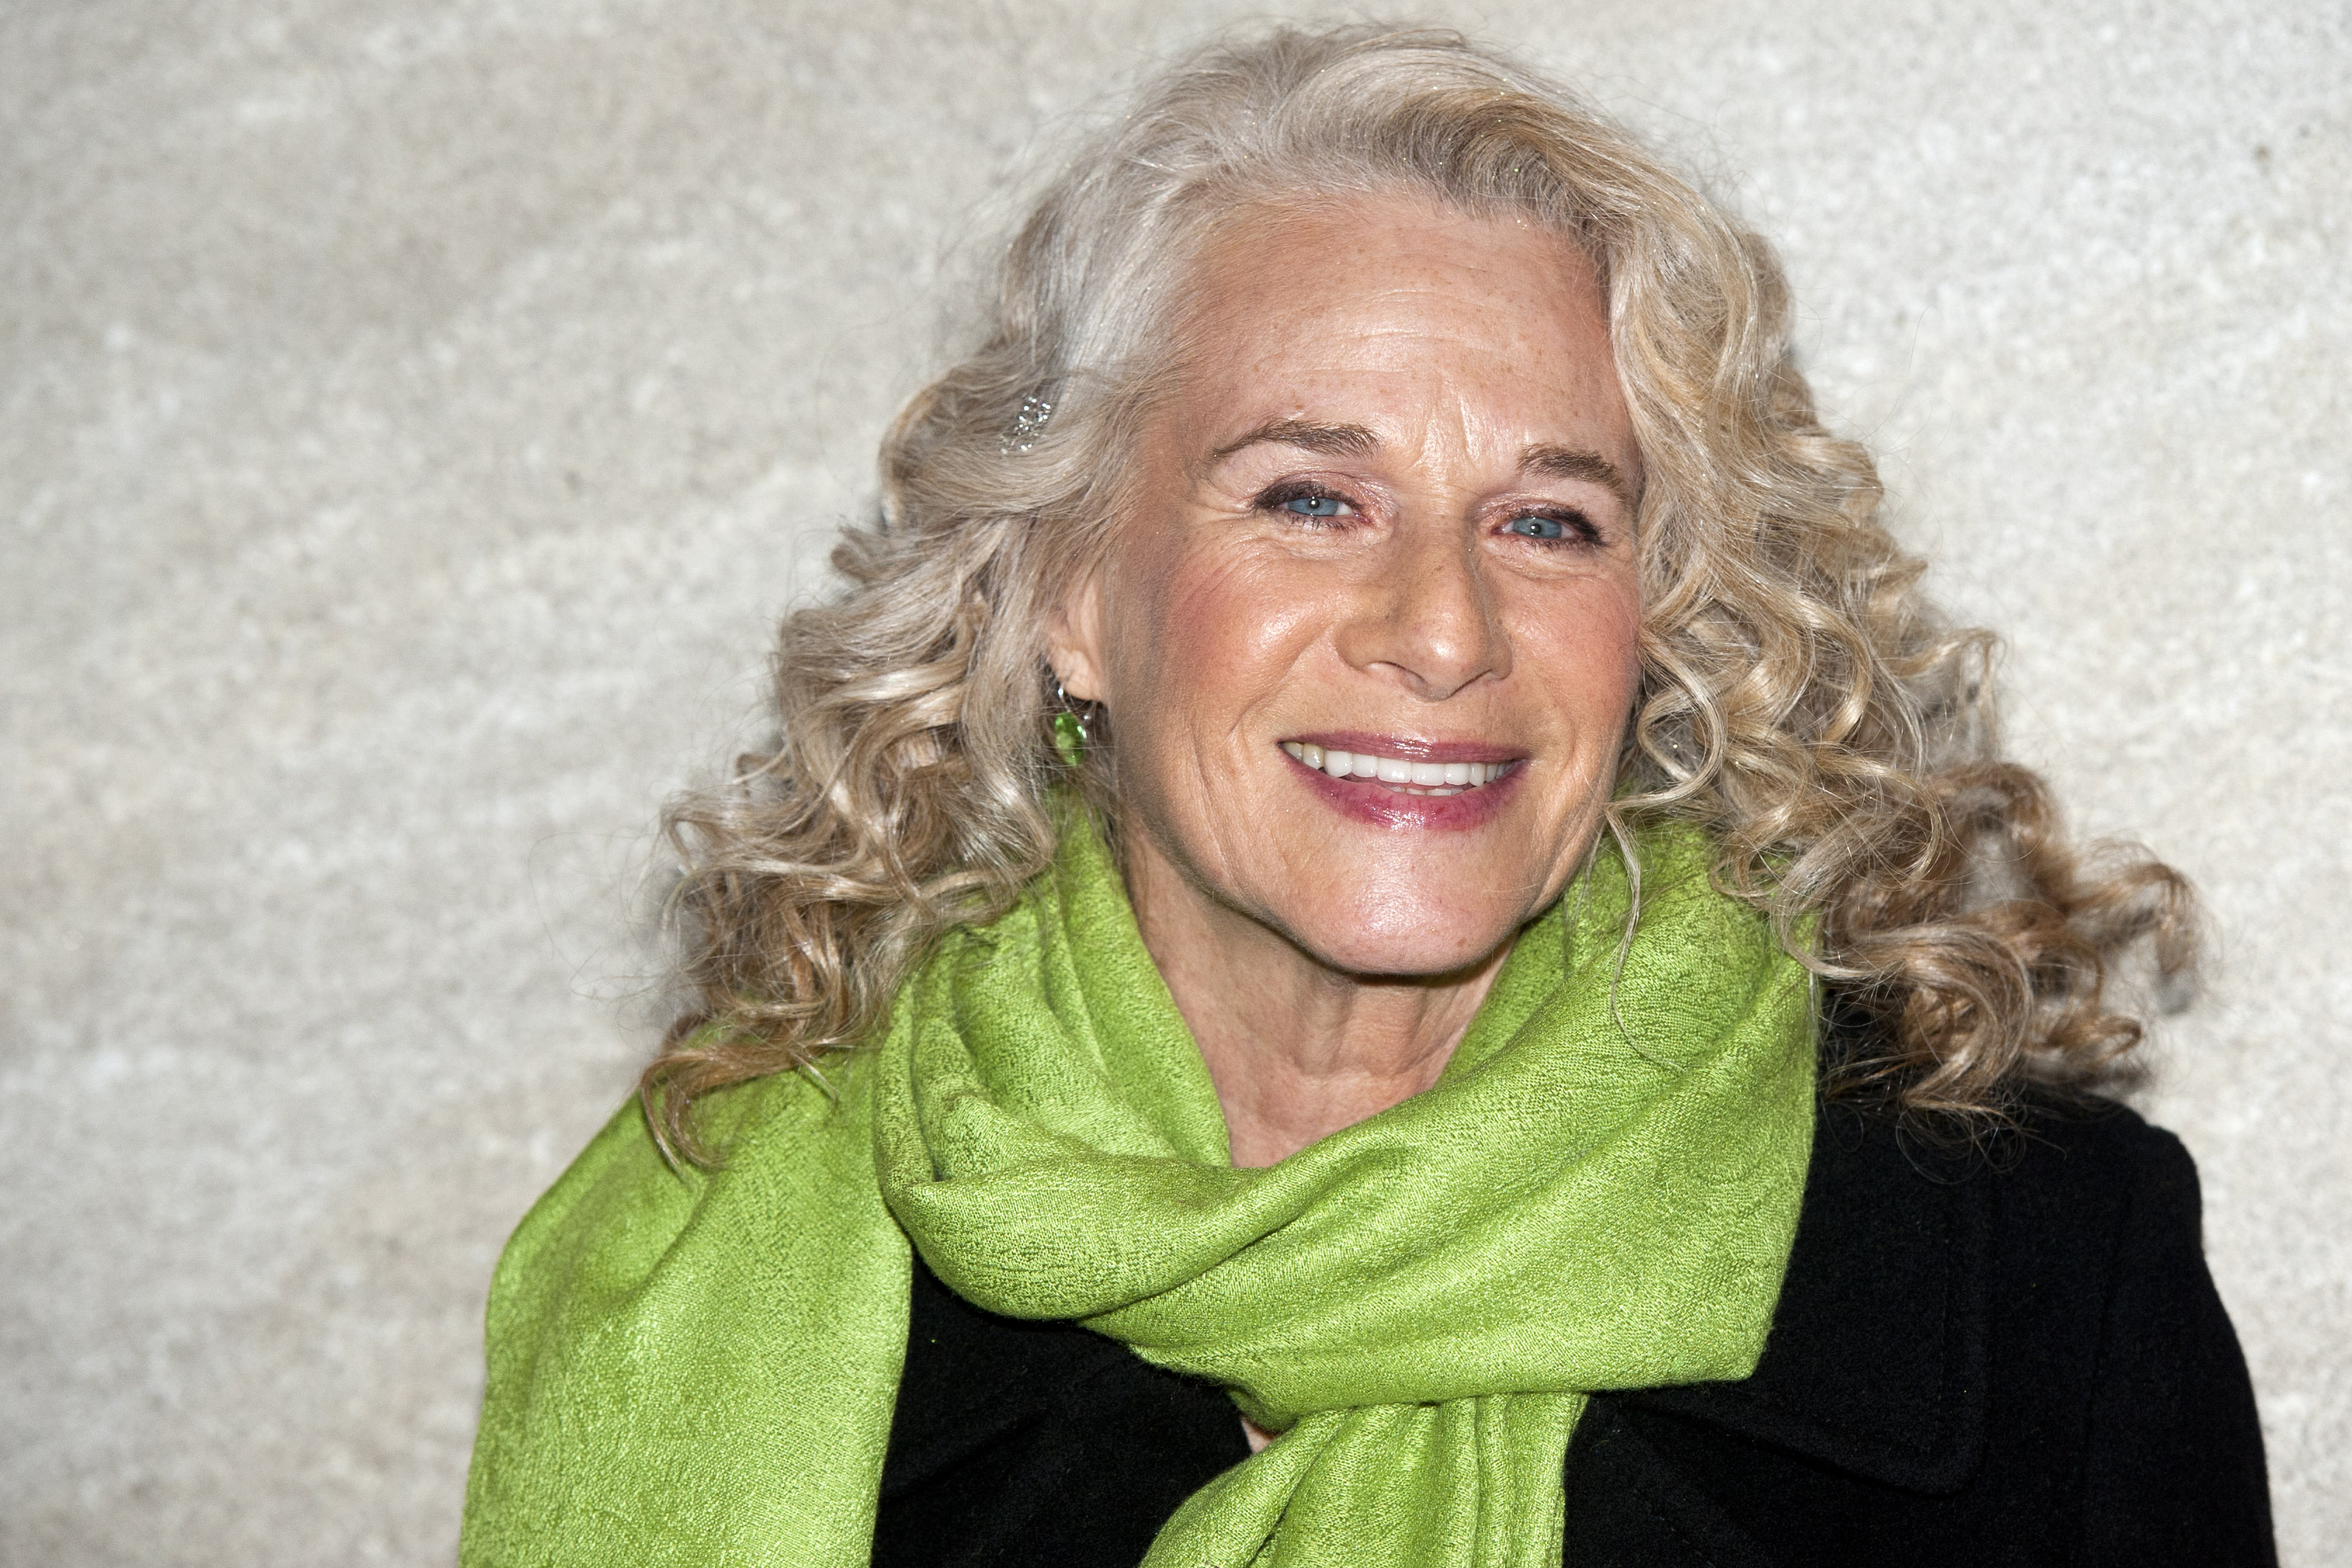 carole king natural womancarole king tapestry, carole king so far away, carole king beautiful, carole king - it's too late, carole king you've got a friend, carole king - jazzman, carole king i feel the earth move, carole king where you lead перевод, carole king - where you lead, carole king beautiful перевод, carole king you've got a friend lyrics, carole king natural woman, carole king - rhymes & reasons, carole king child of mine, carole king discogs, carole king tapestry wiki, carole king so far away lyrics, carole king lyrics, carole king - music, carole king young